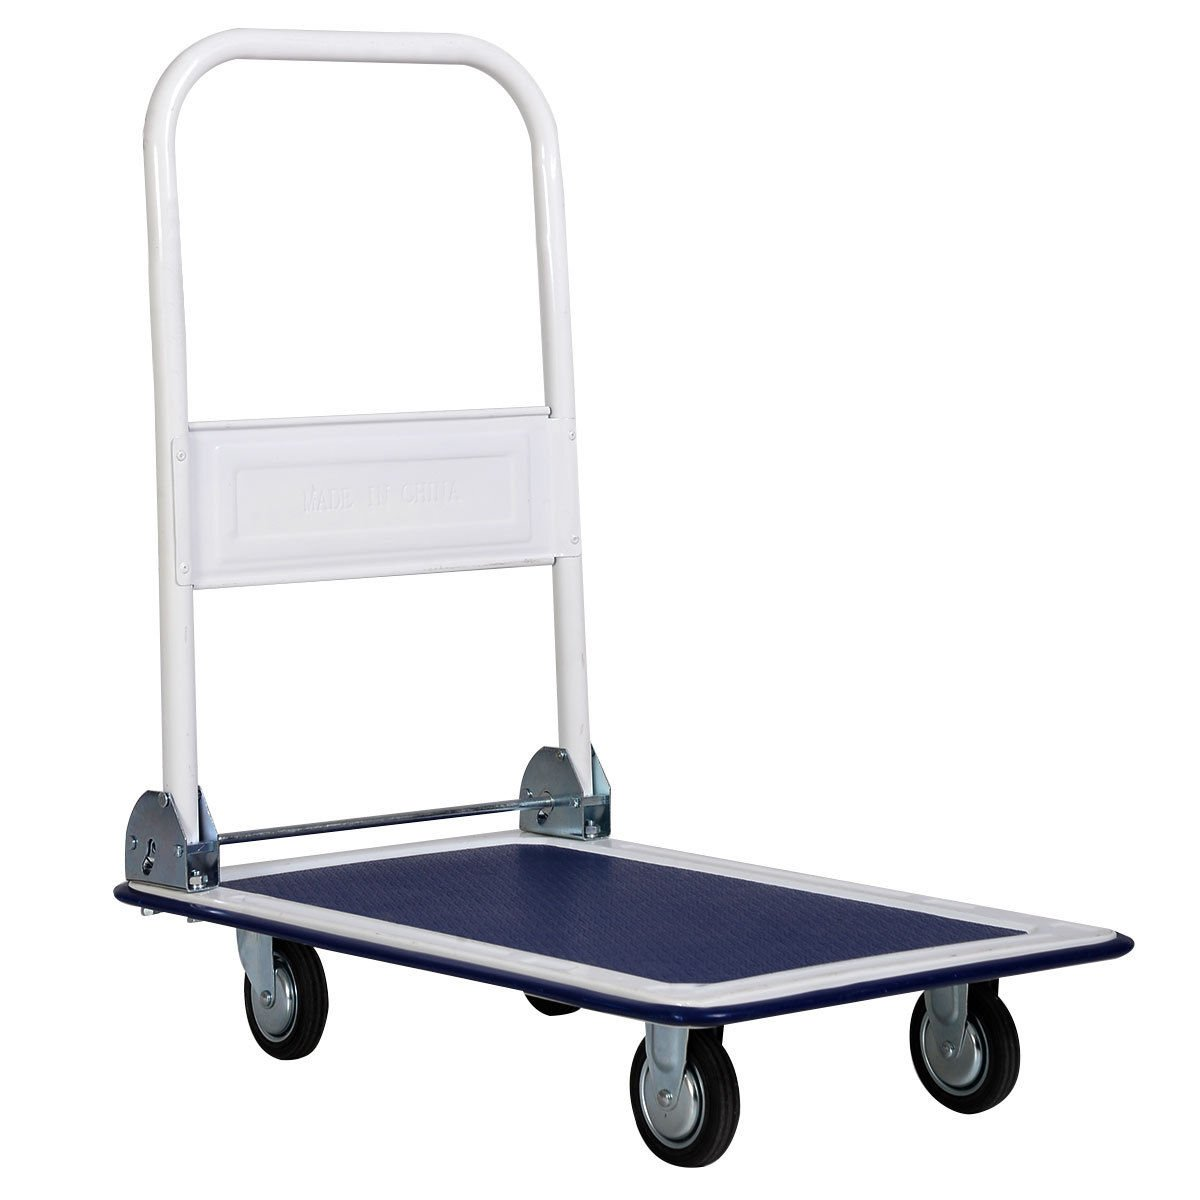 330lbs platform cart dolly folding foldable moving warehouse push hand truck for home, outdoor